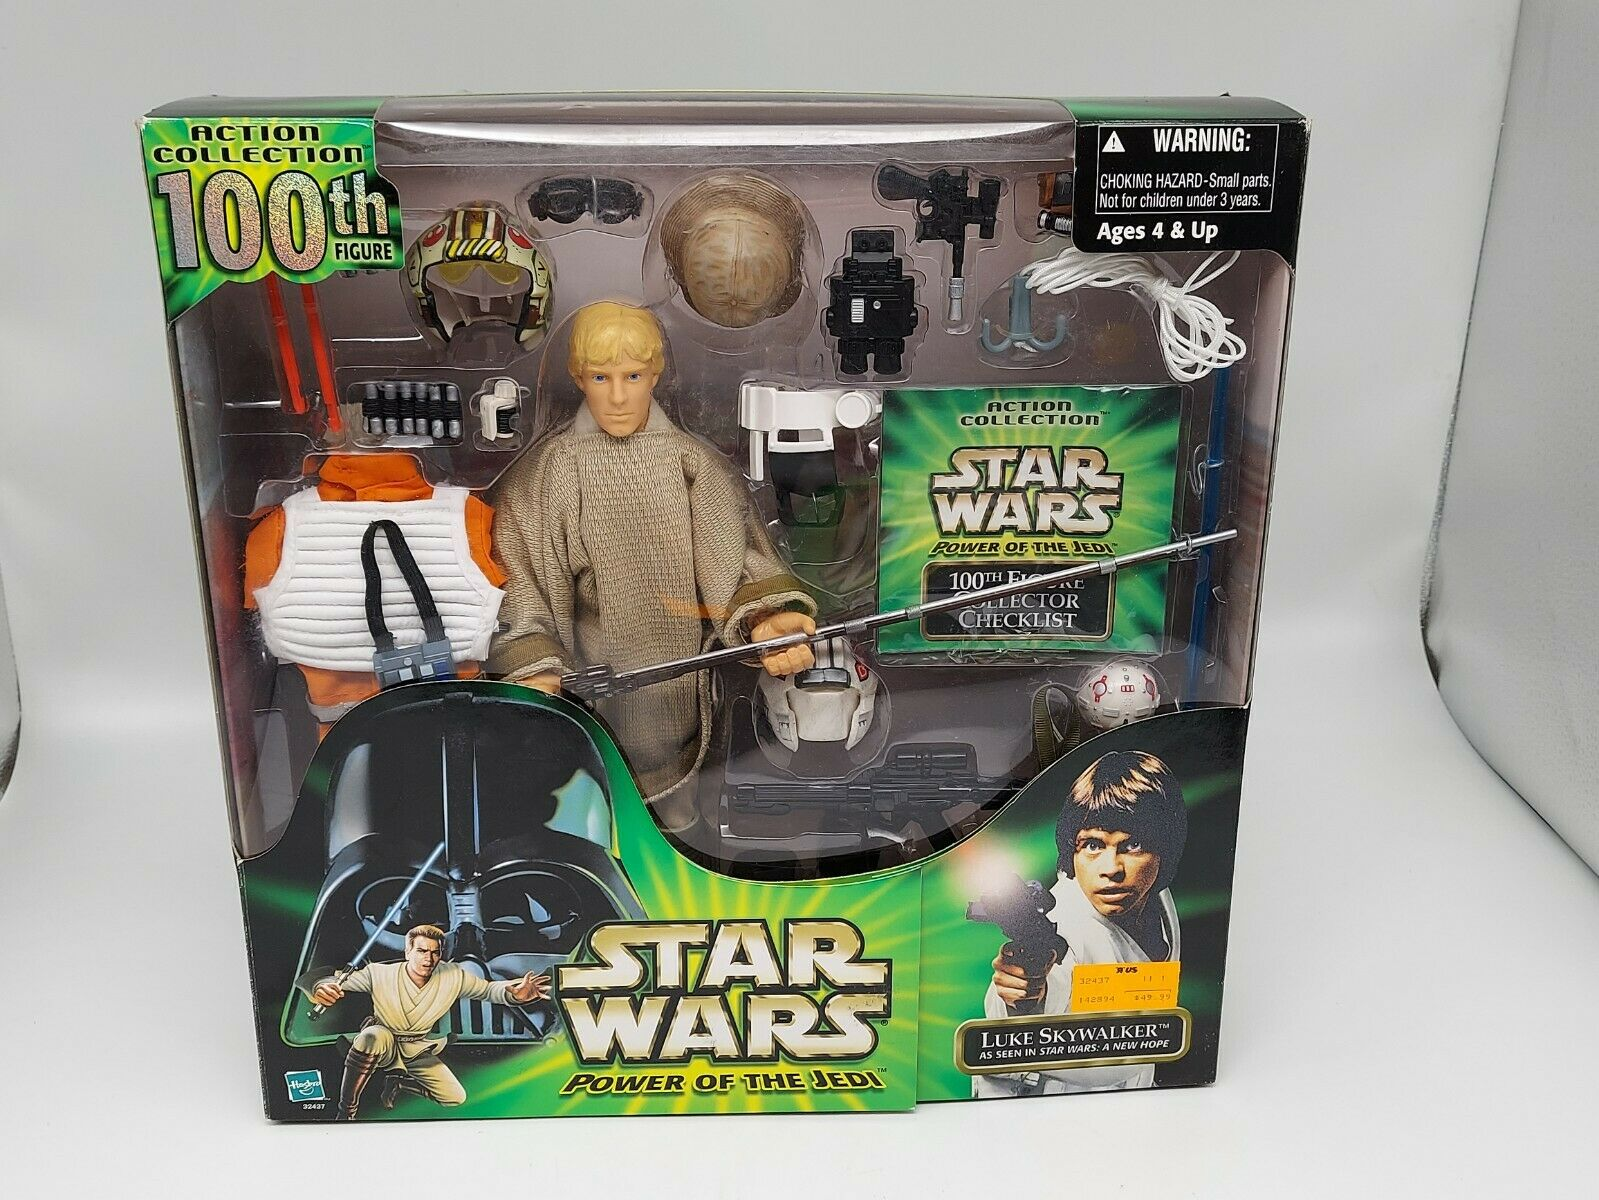 Star Wars Power of the Jedi Action Collection 100th Figure 12